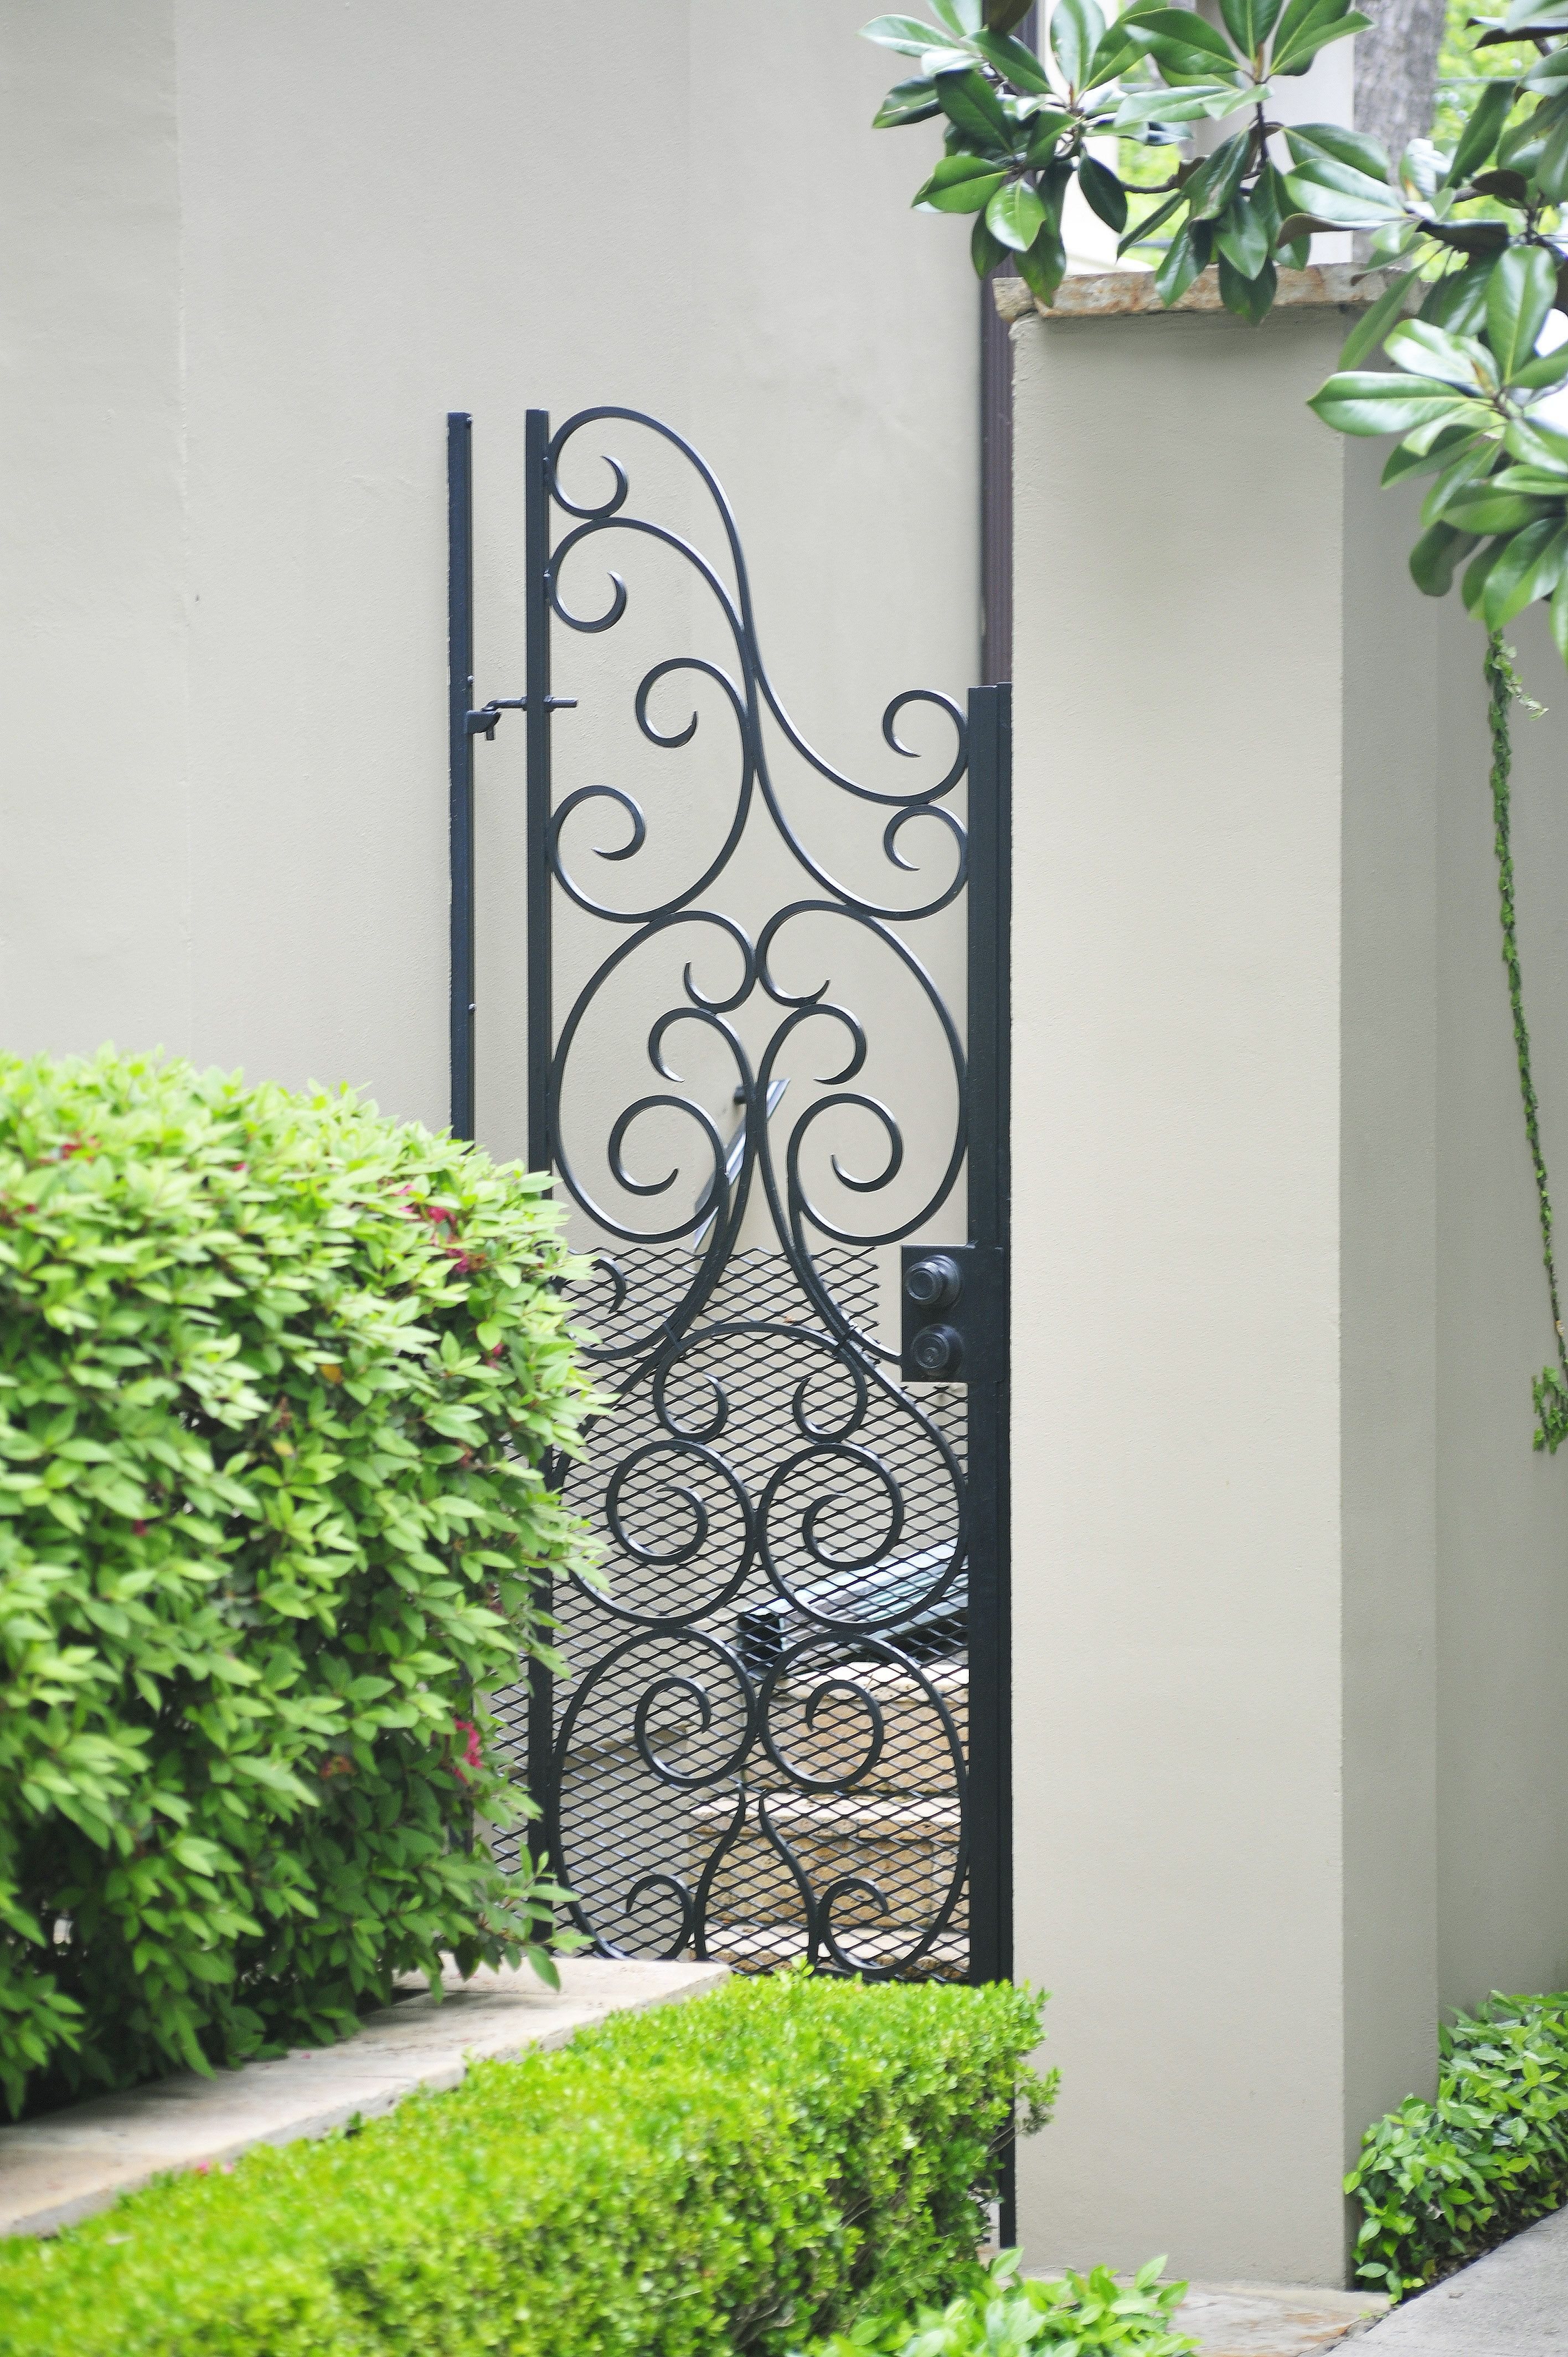 Gates Don T Have To Be Boring Use S C Scrolls To Create A Custom One Gate Design Concept Design Garden Gates